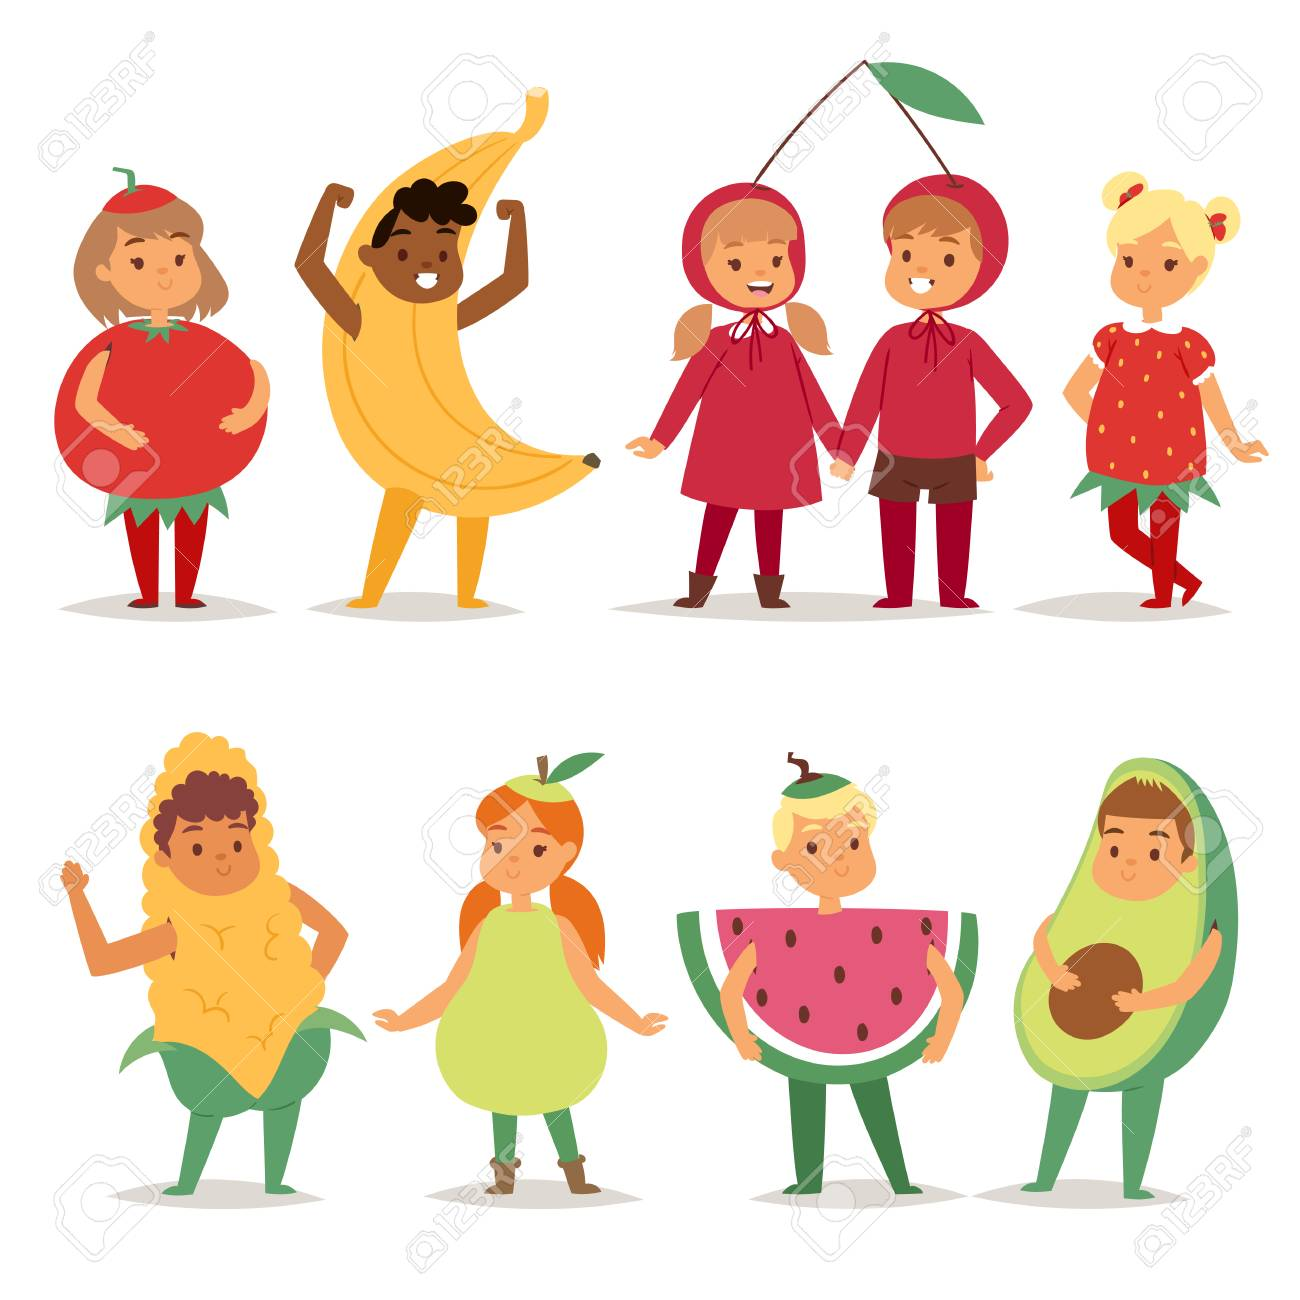 Cartoon Kids Fruits Festive Costume Boys And Girls Fancy Dress Childhood Party Characters Vector Illustration